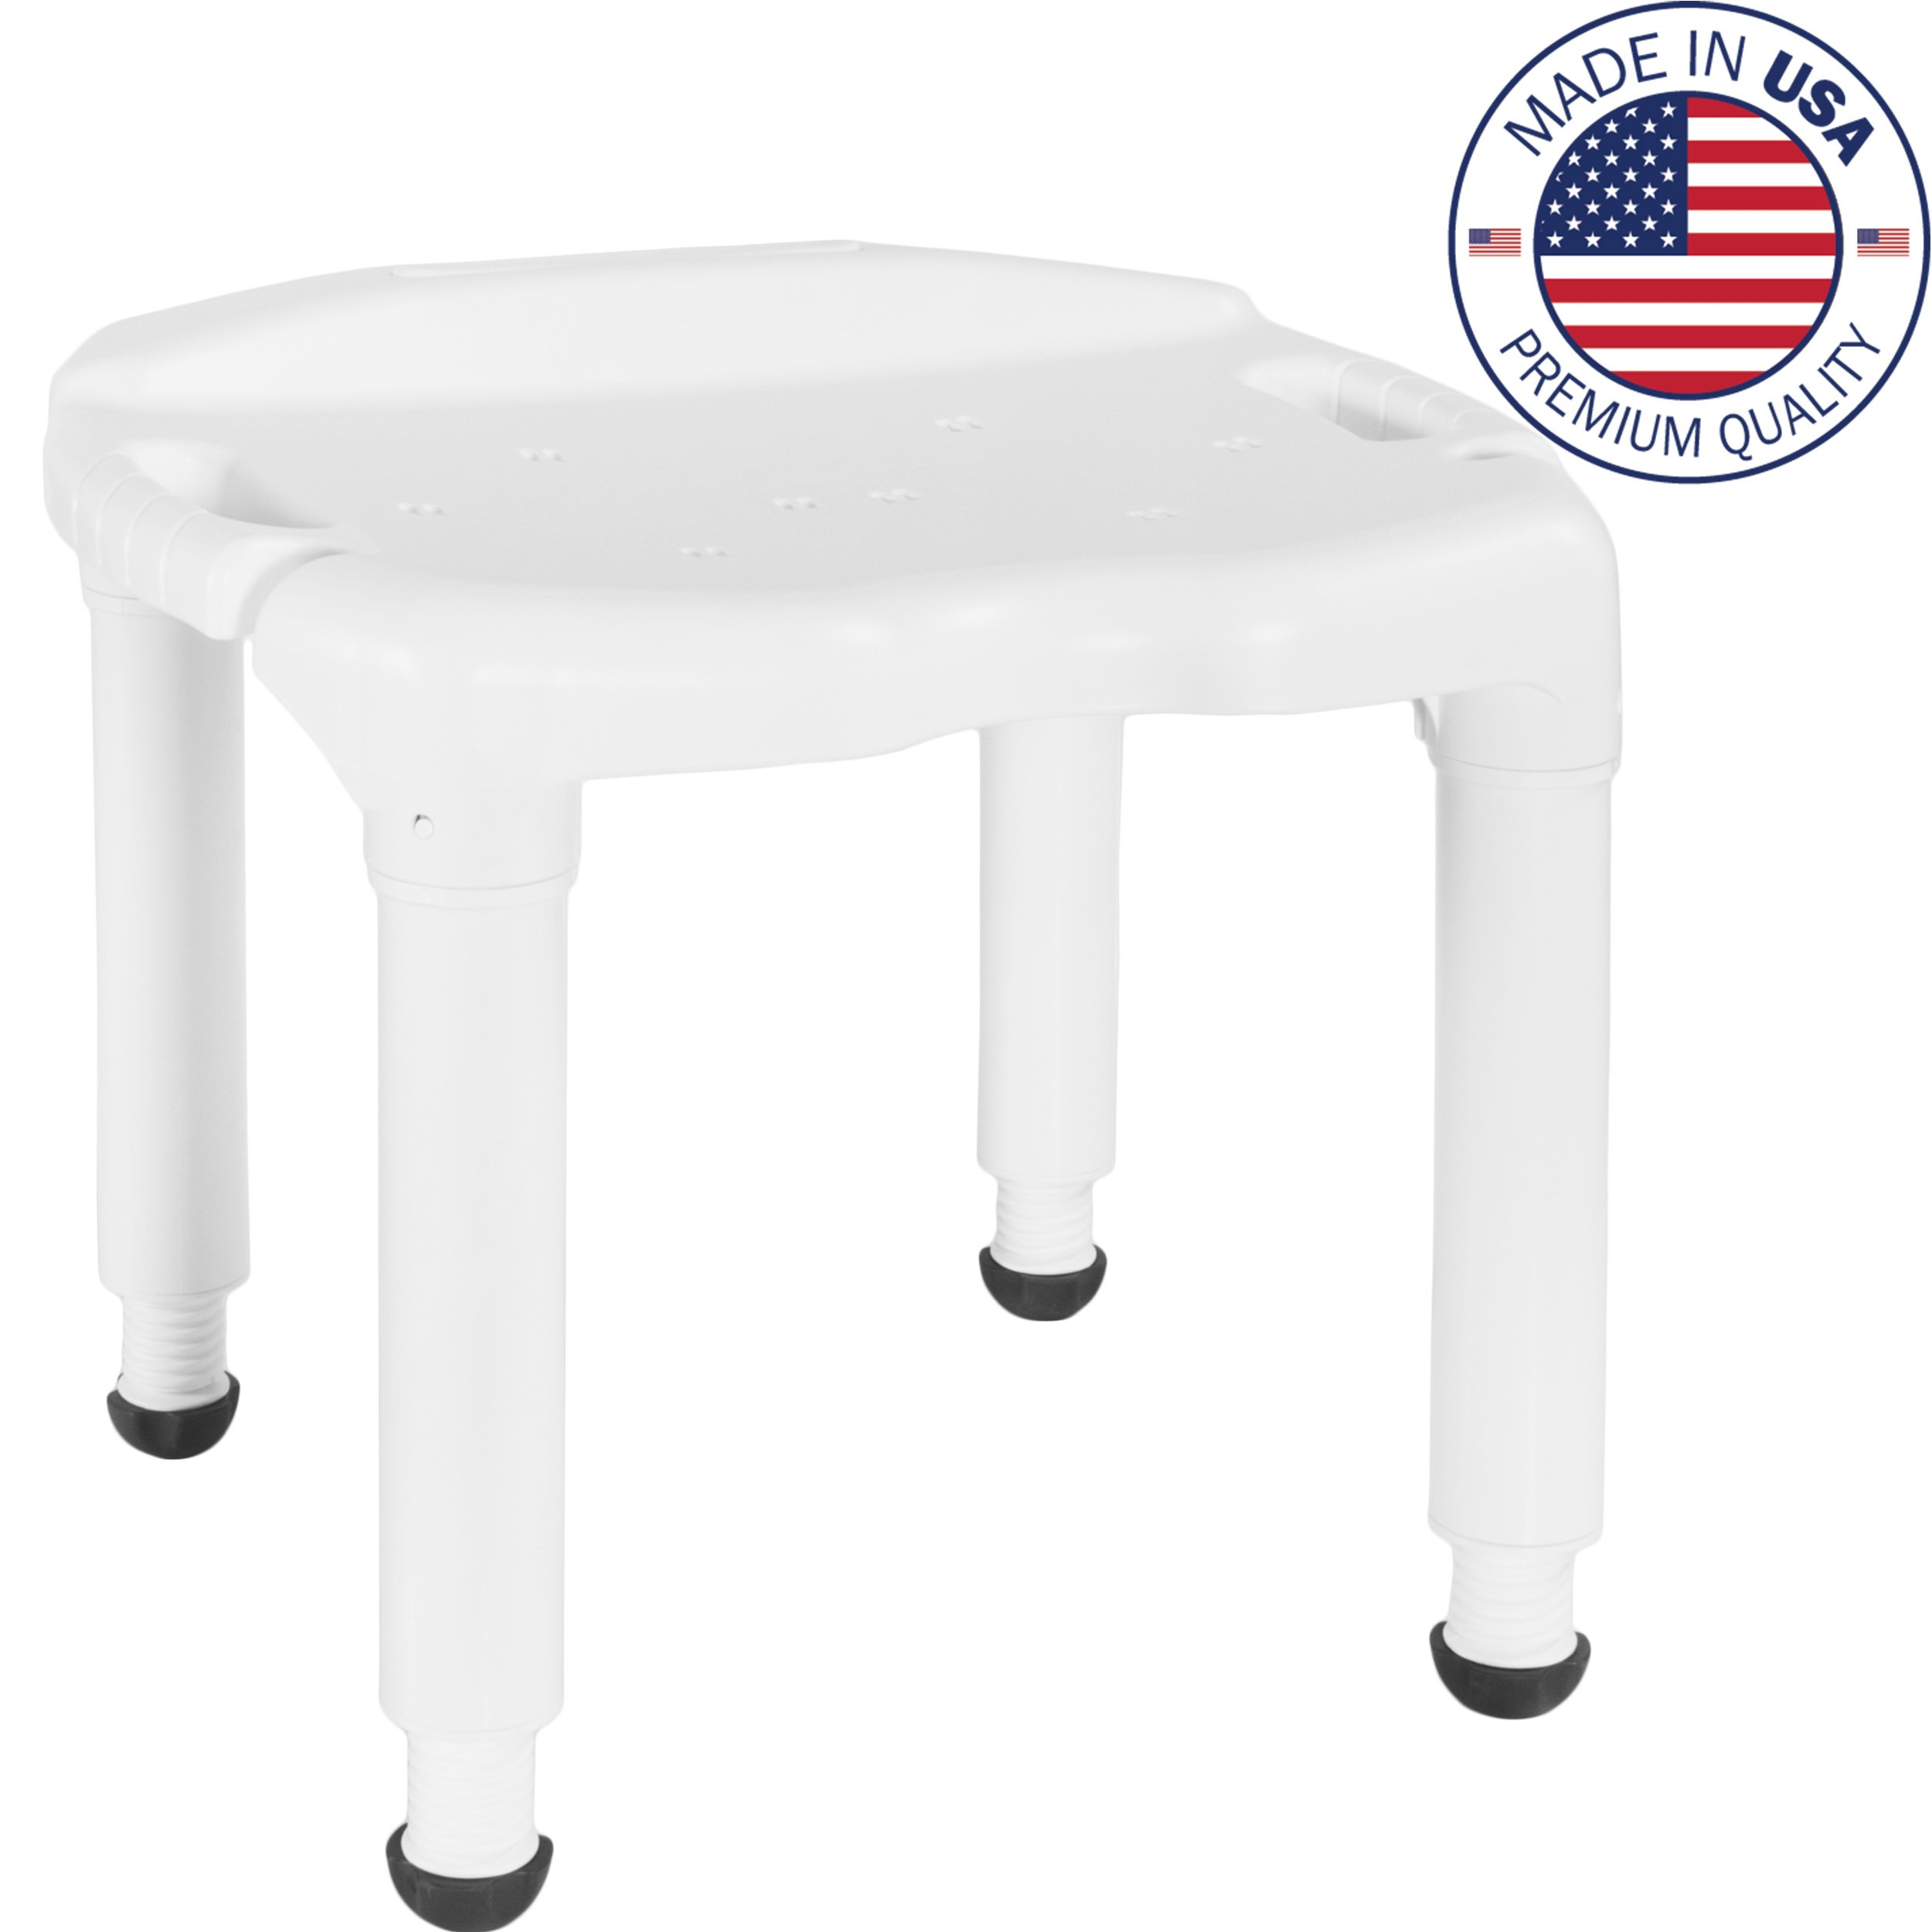 height seat edited care shower chair inc reclining products at